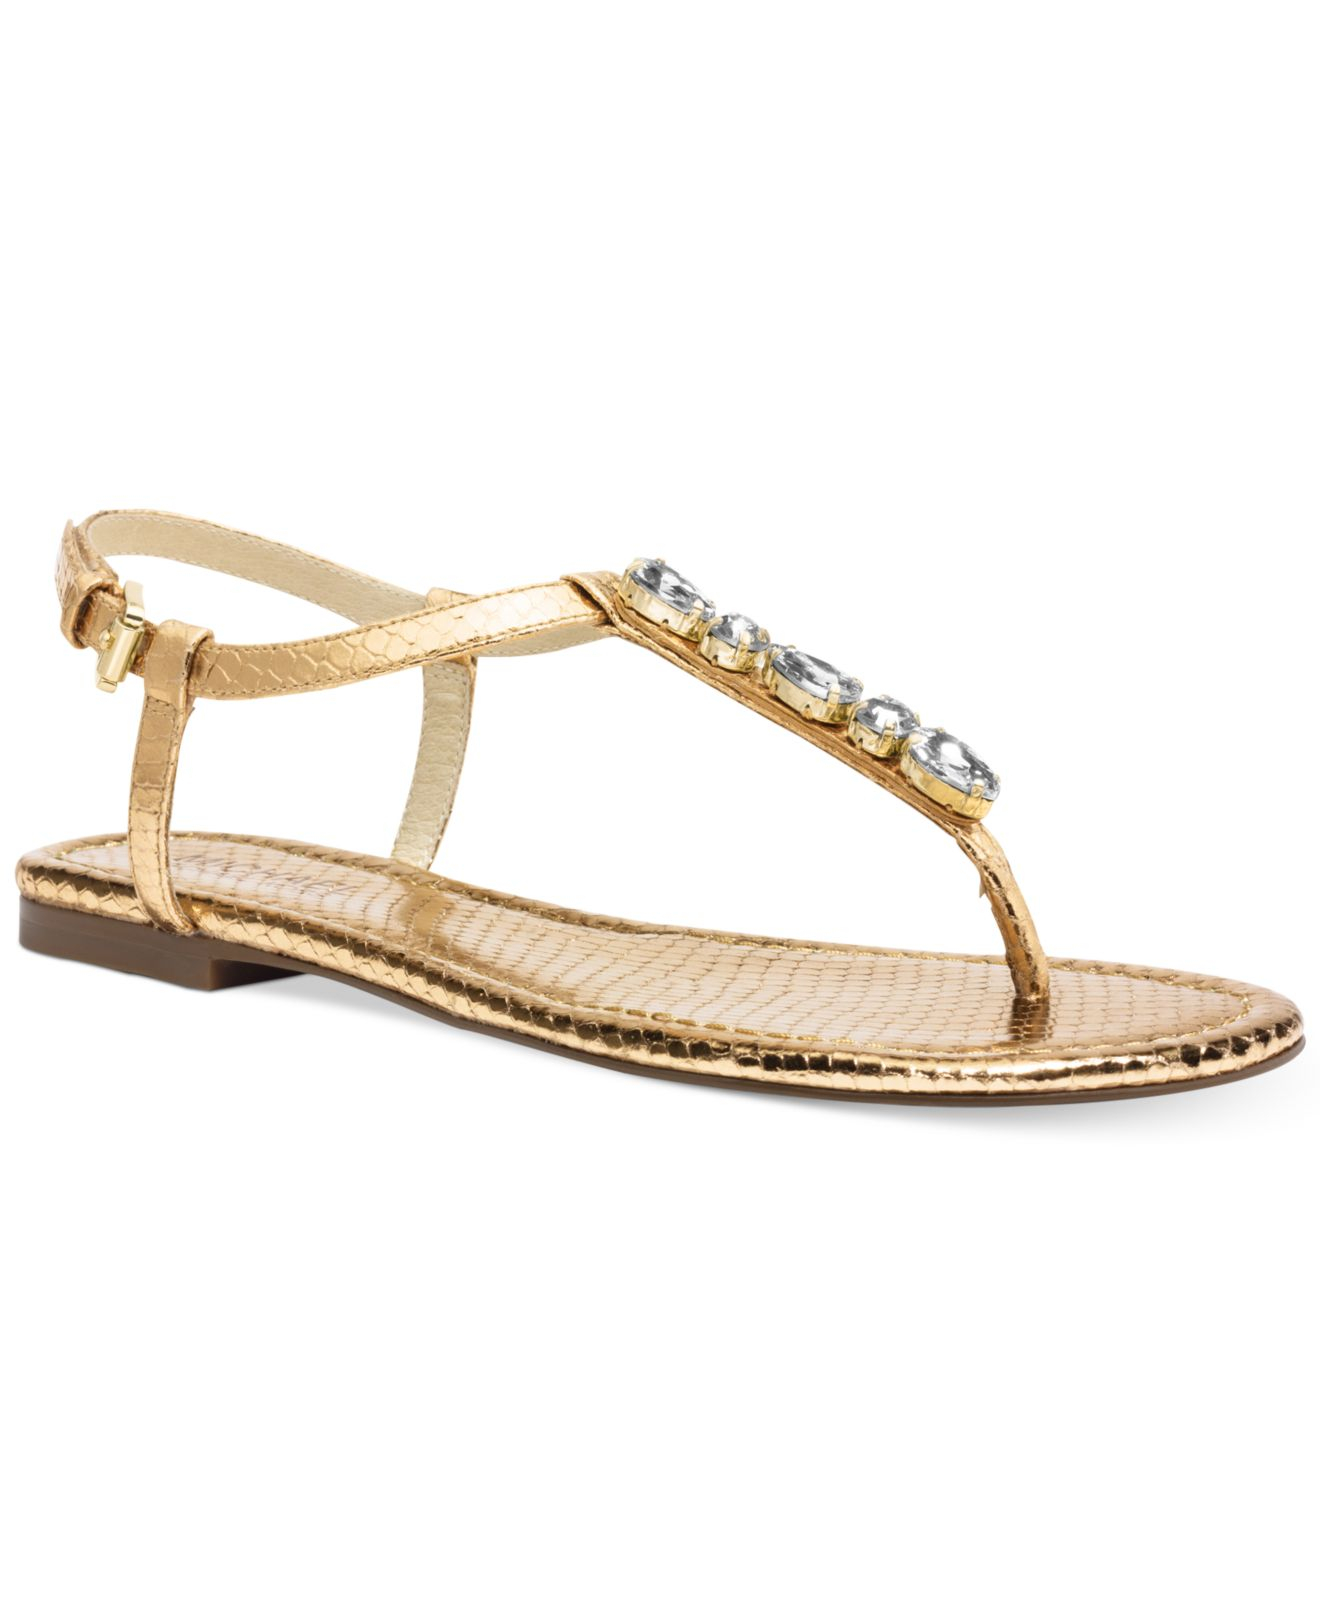 b7563ac49819 Lyst - Michael Kors Michael Jayden Jeweled Flat Thong Sandals in ...